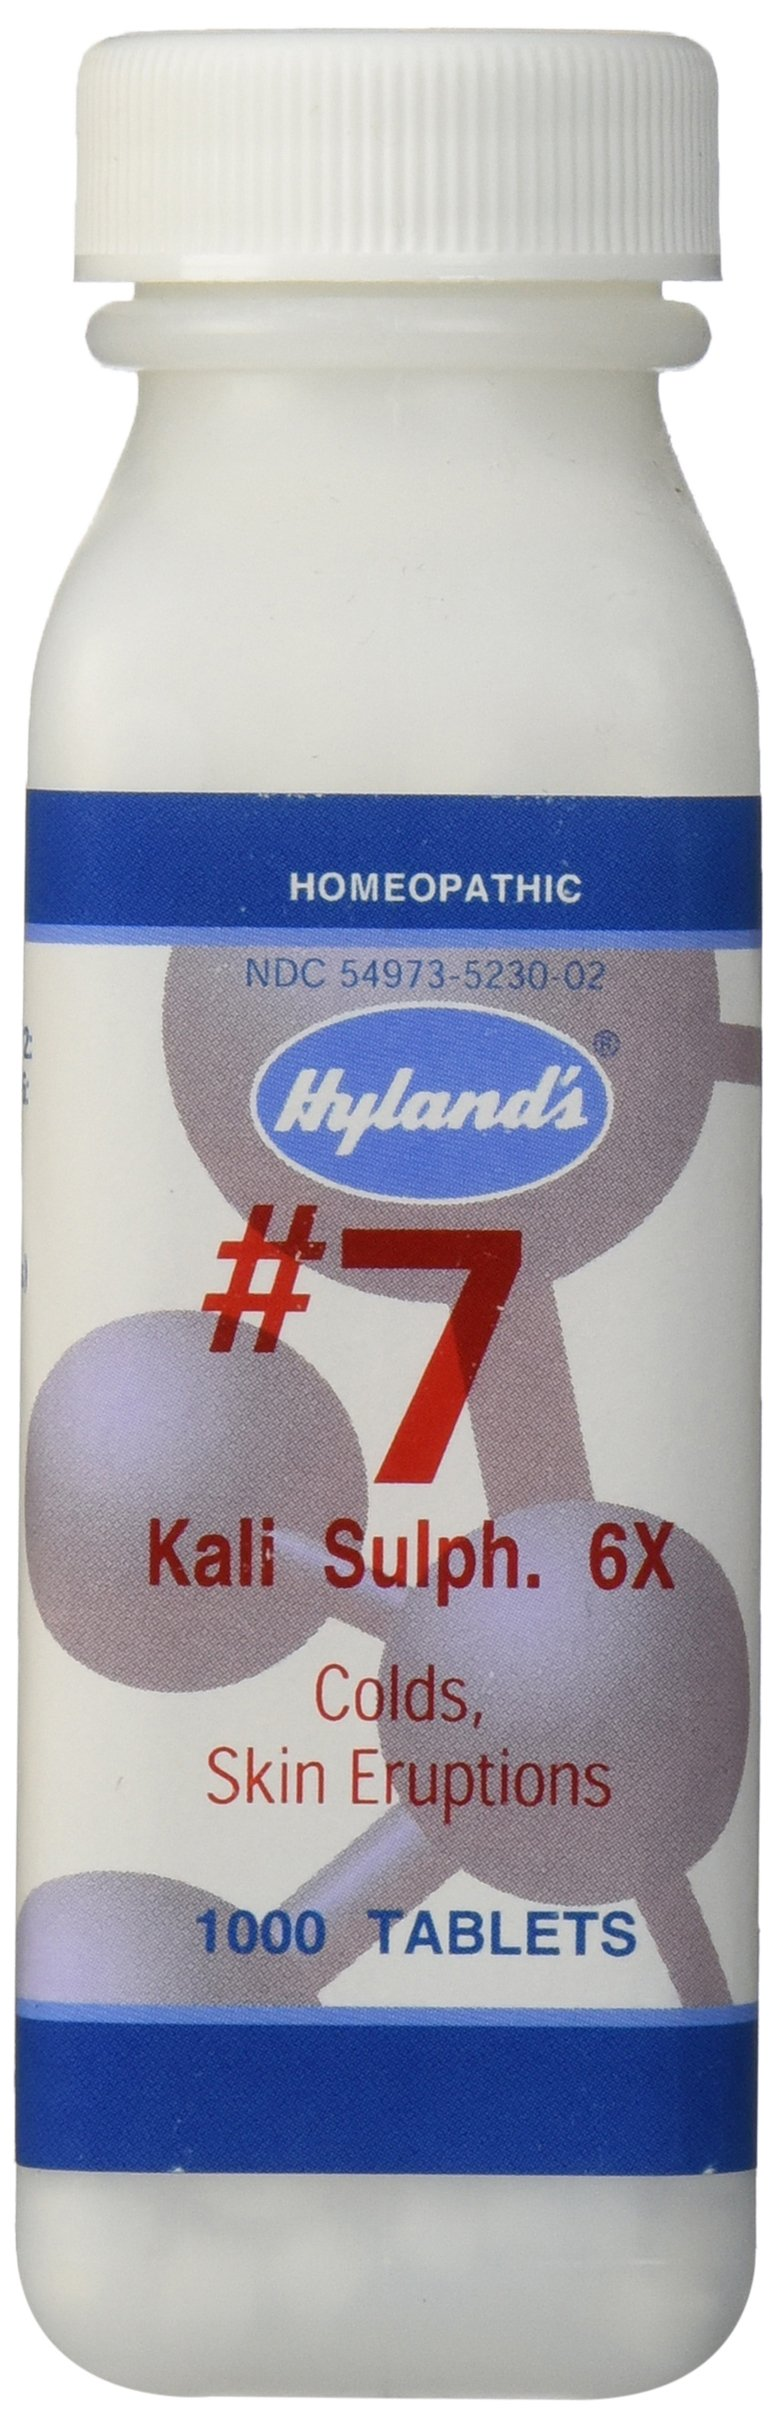 Hyland's Cell Salts #7 Kali Sulphuricum 6X Tablets, Natural Homeopathic Relief of Colds and Skin Eruptions, 1000 Count